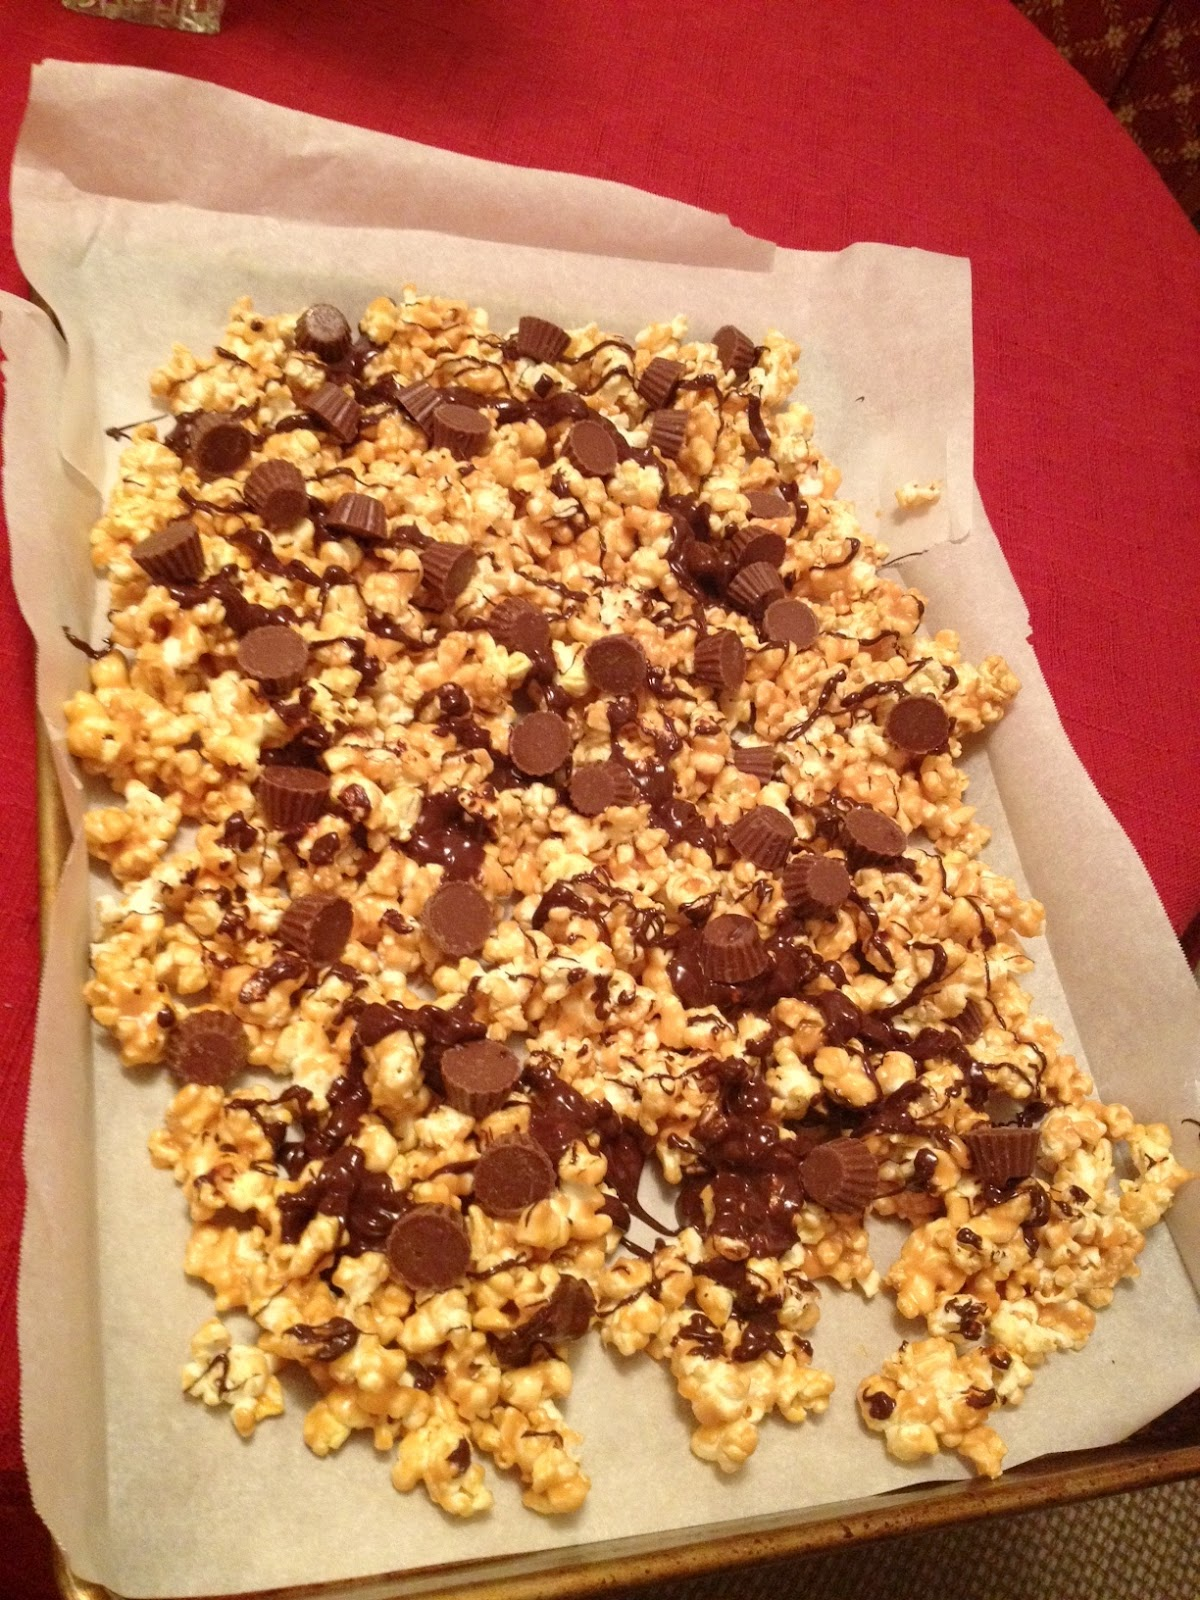 ... oklahoma girl in a colorado world: Reese's Peanut Butter Cup Popcorn